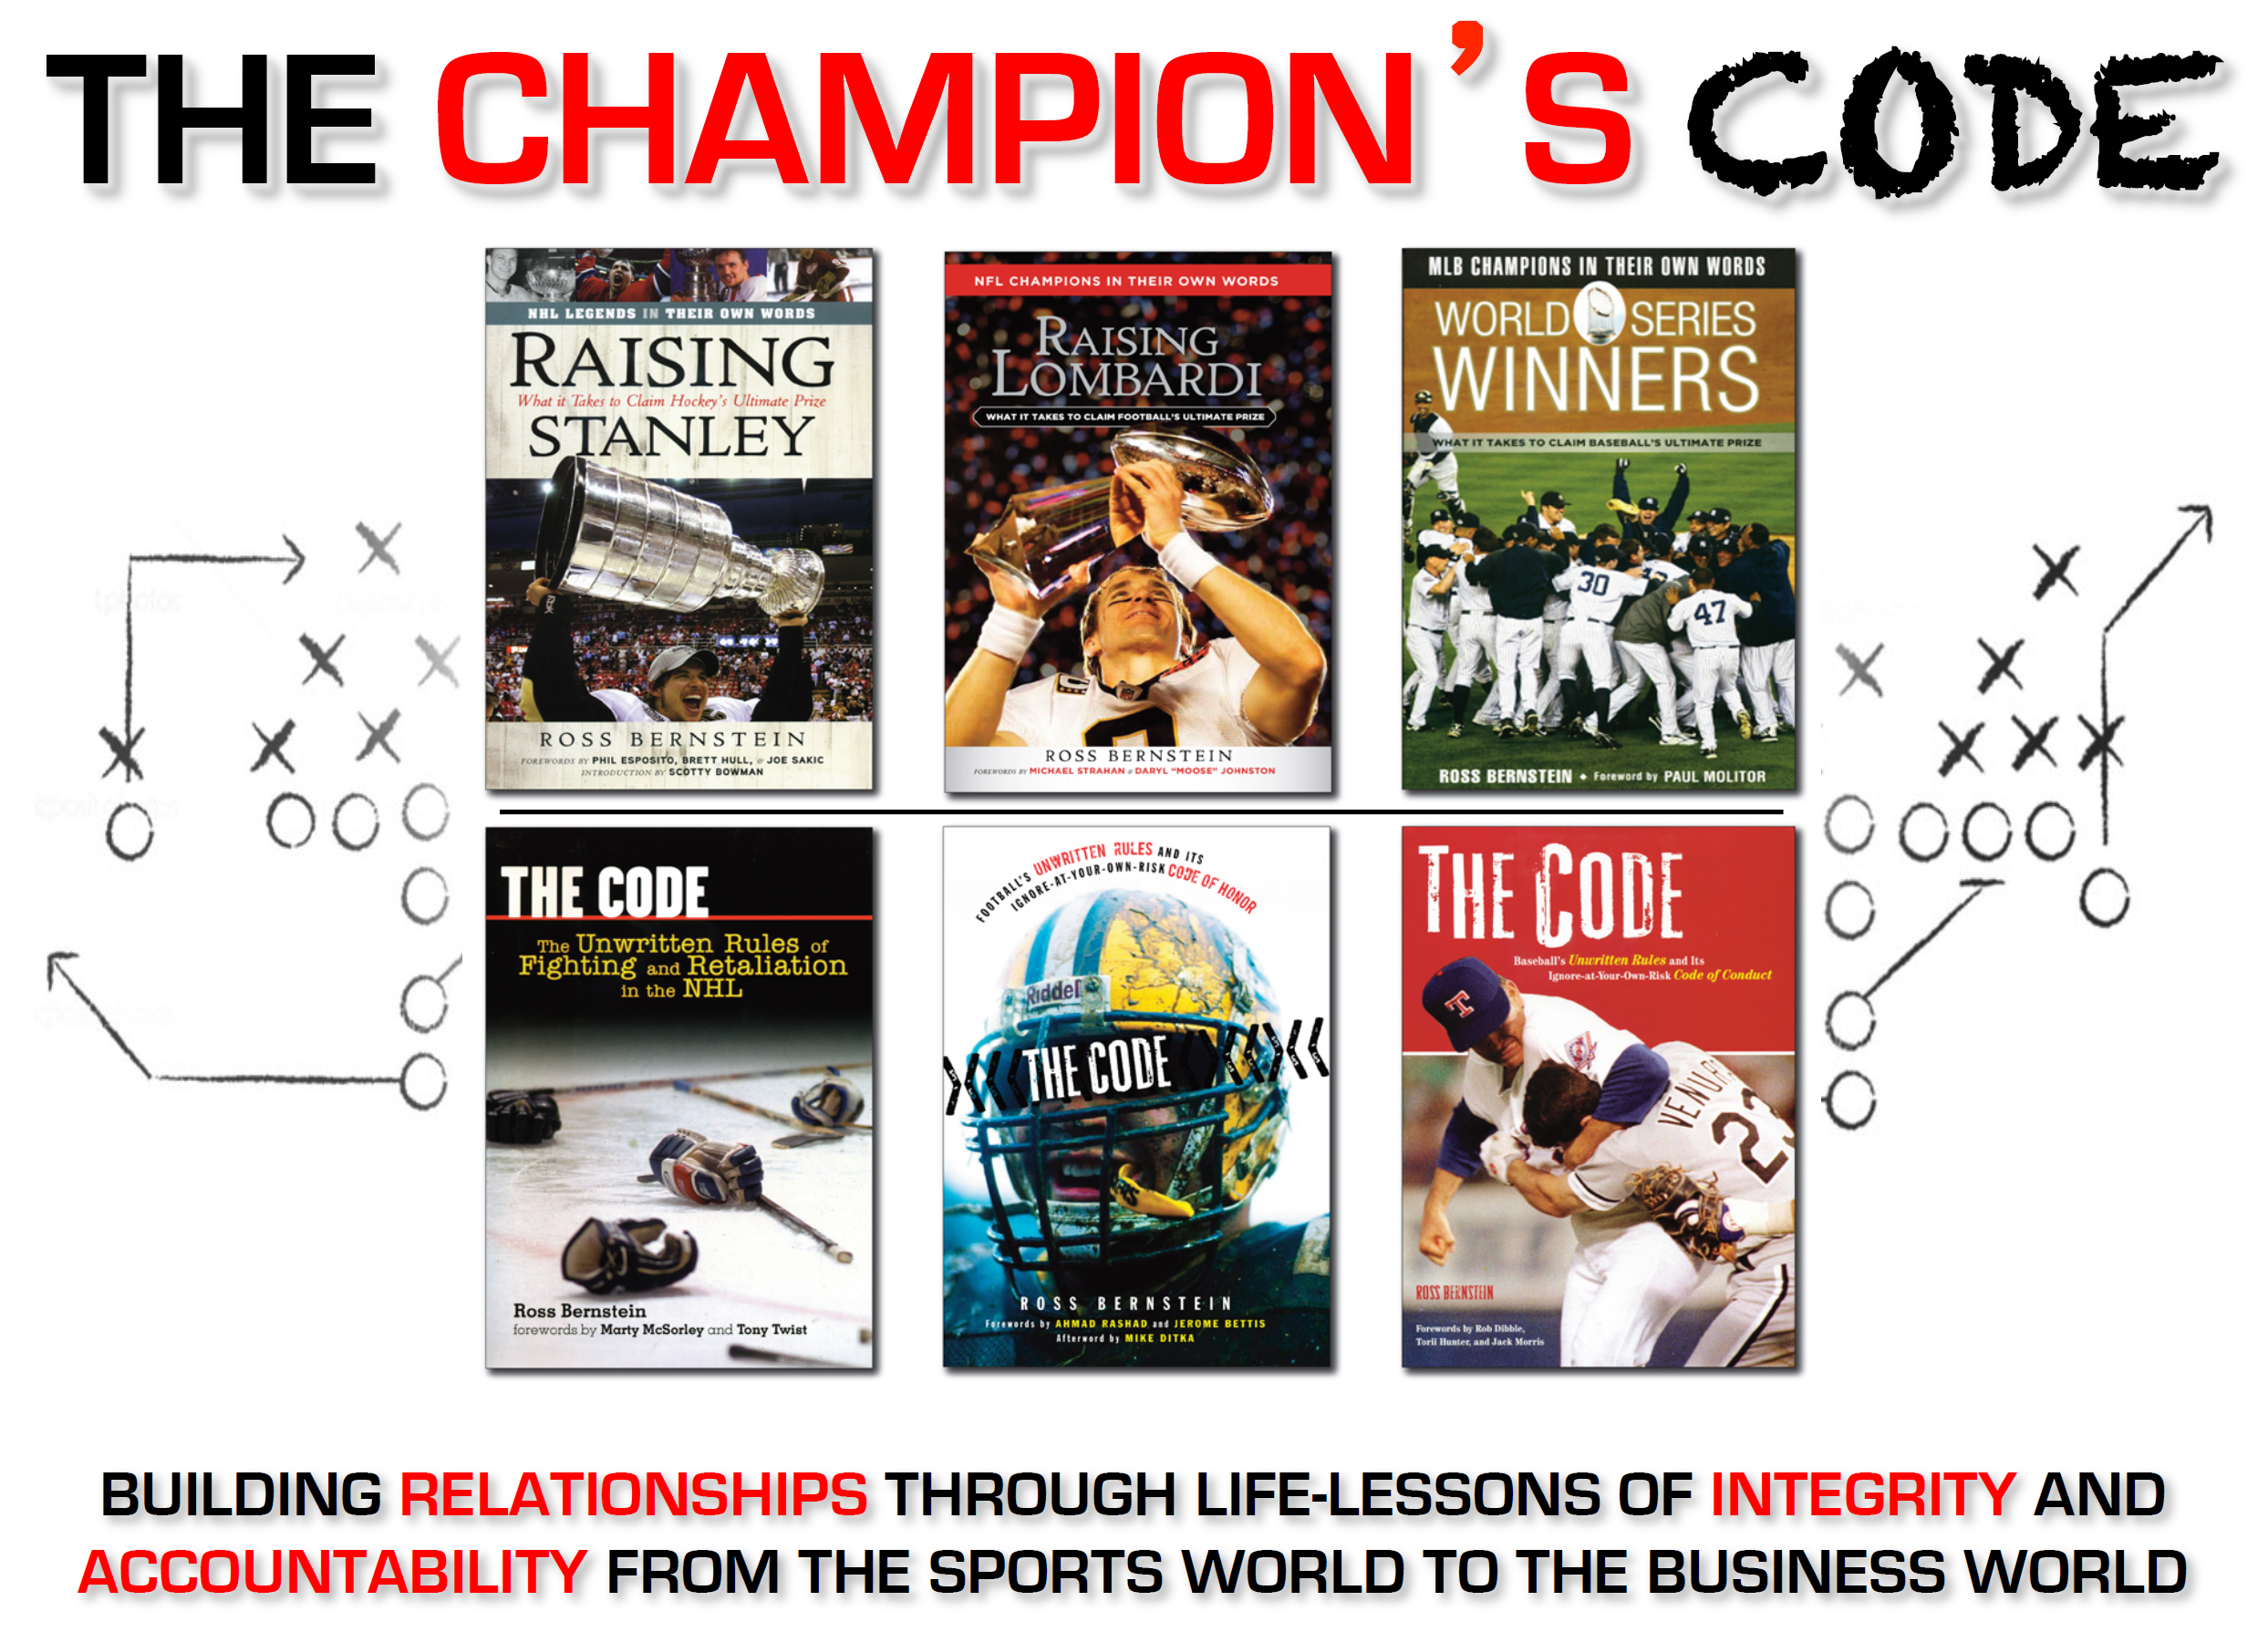 The Champions Code